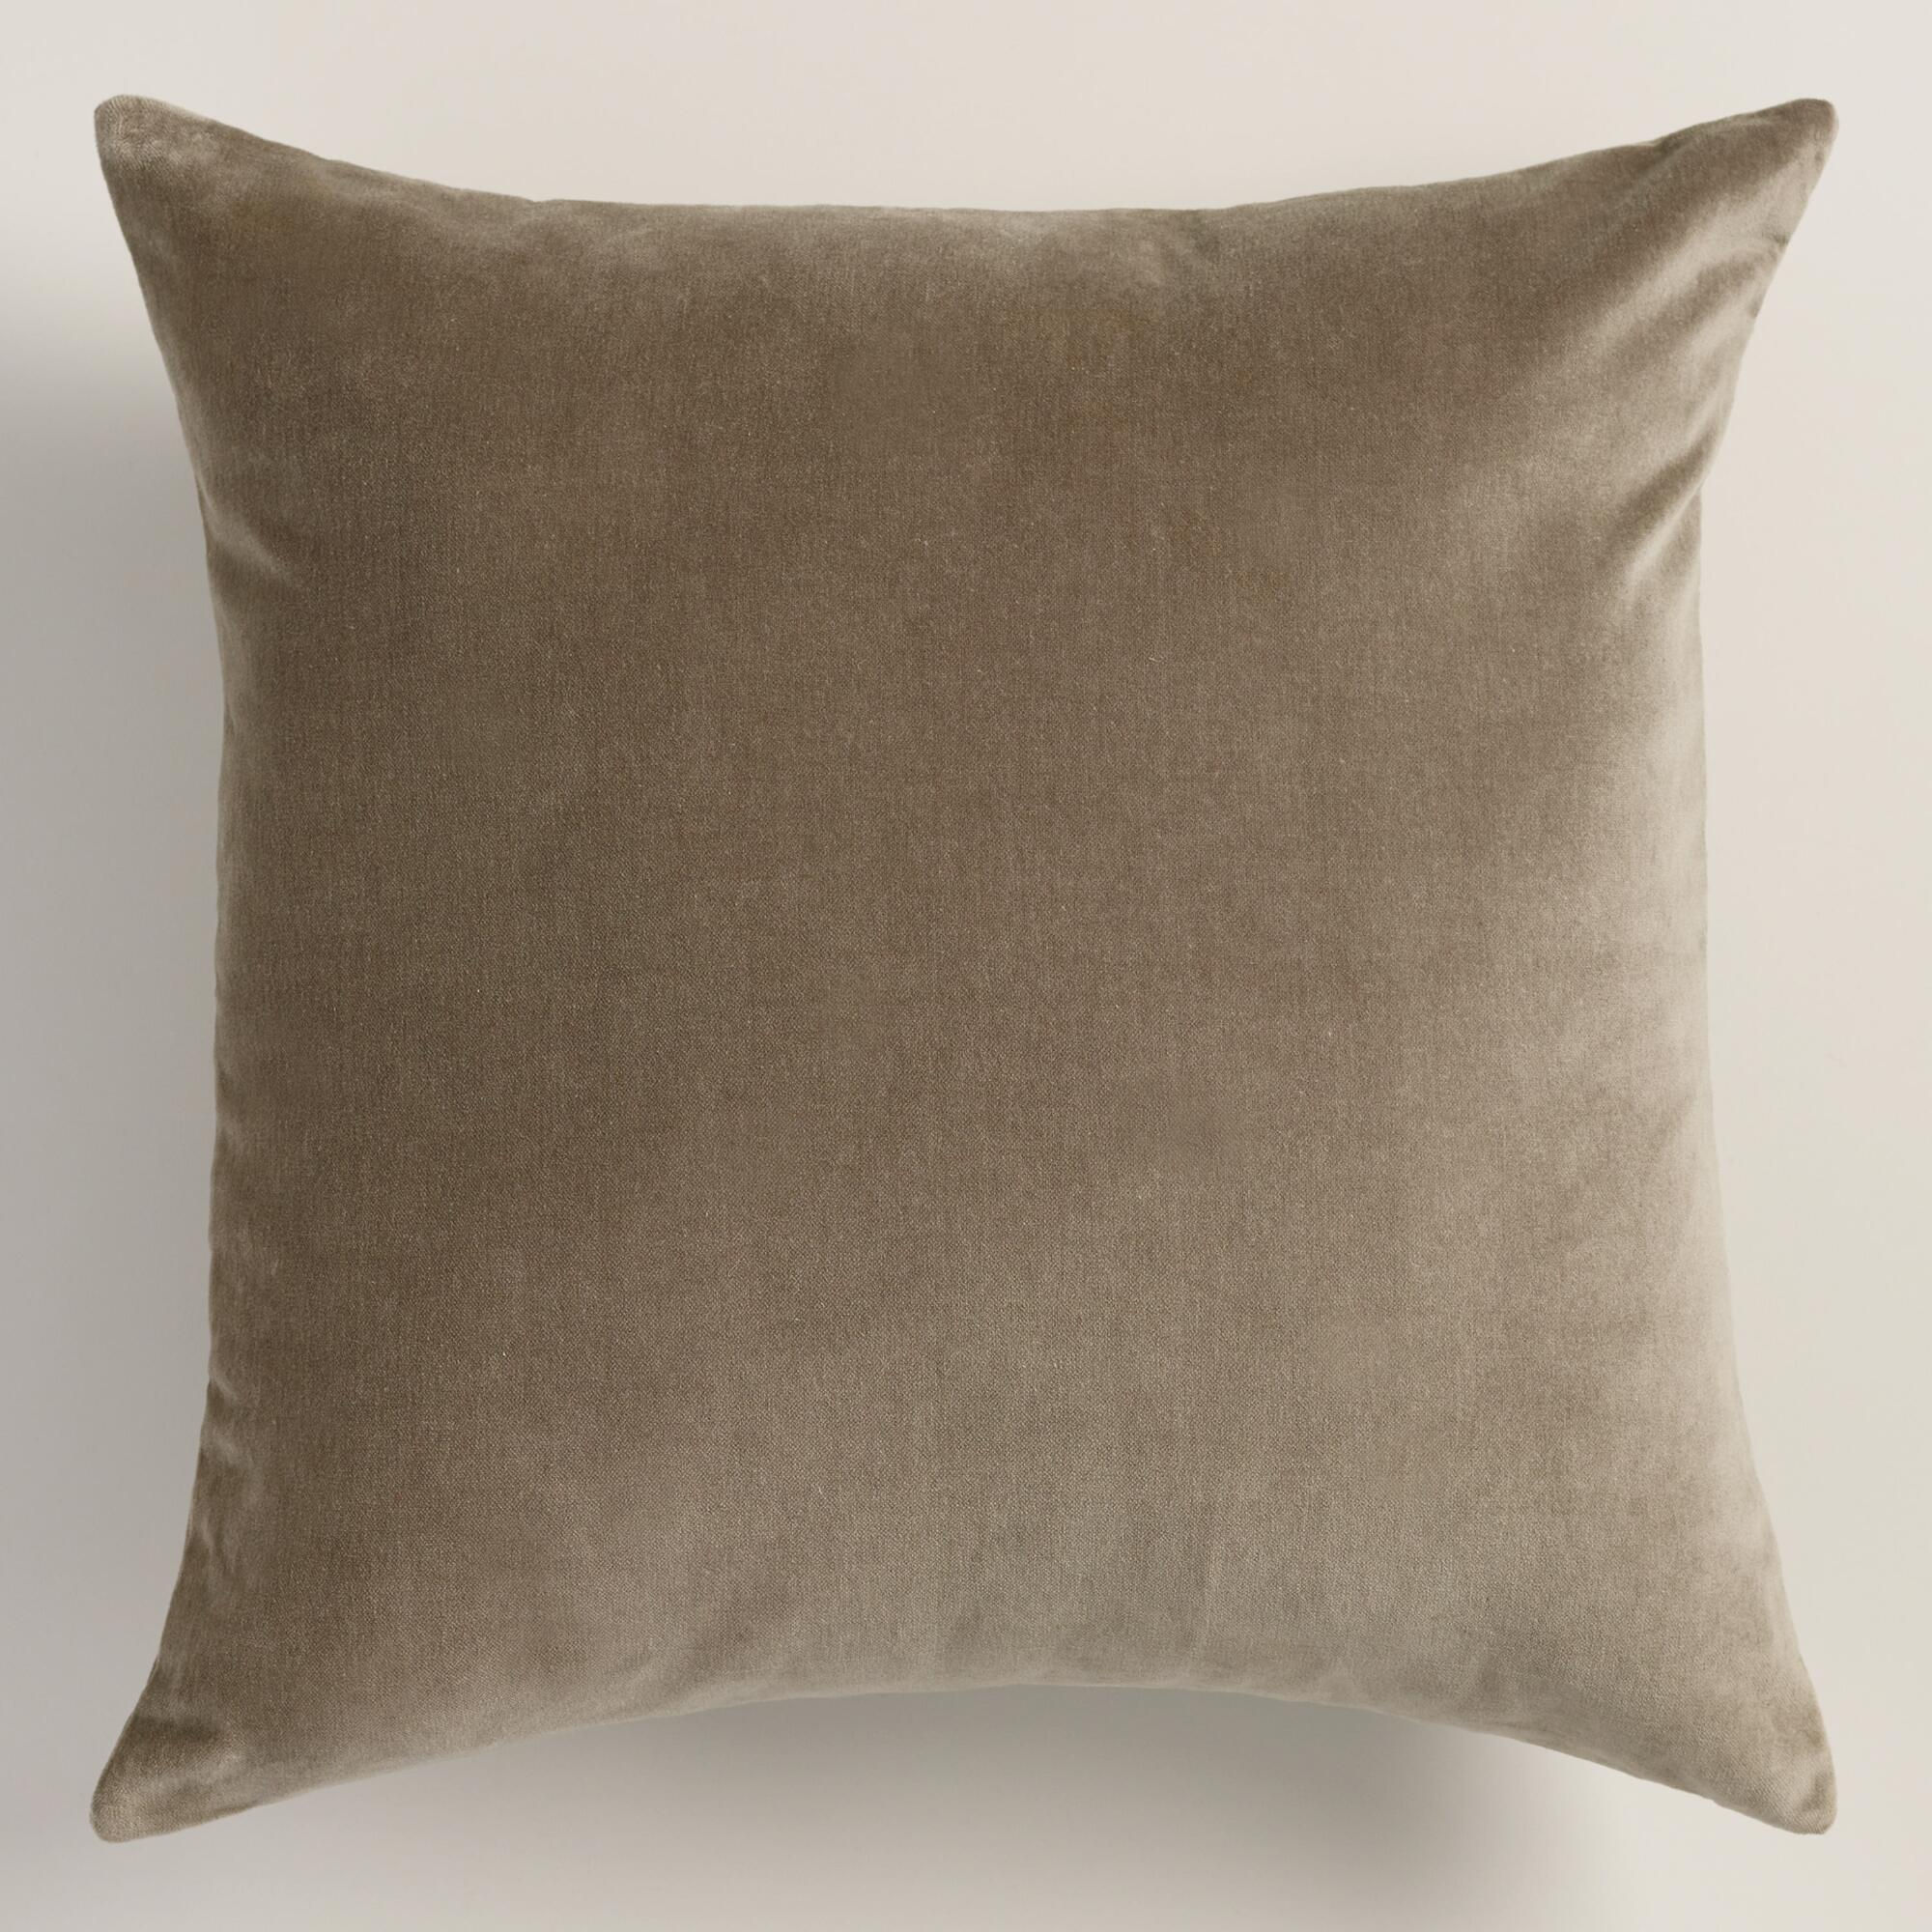 Throw Pillows For Taupe Sofa : Walnut Taupe Velvet Throw Pillow World Market